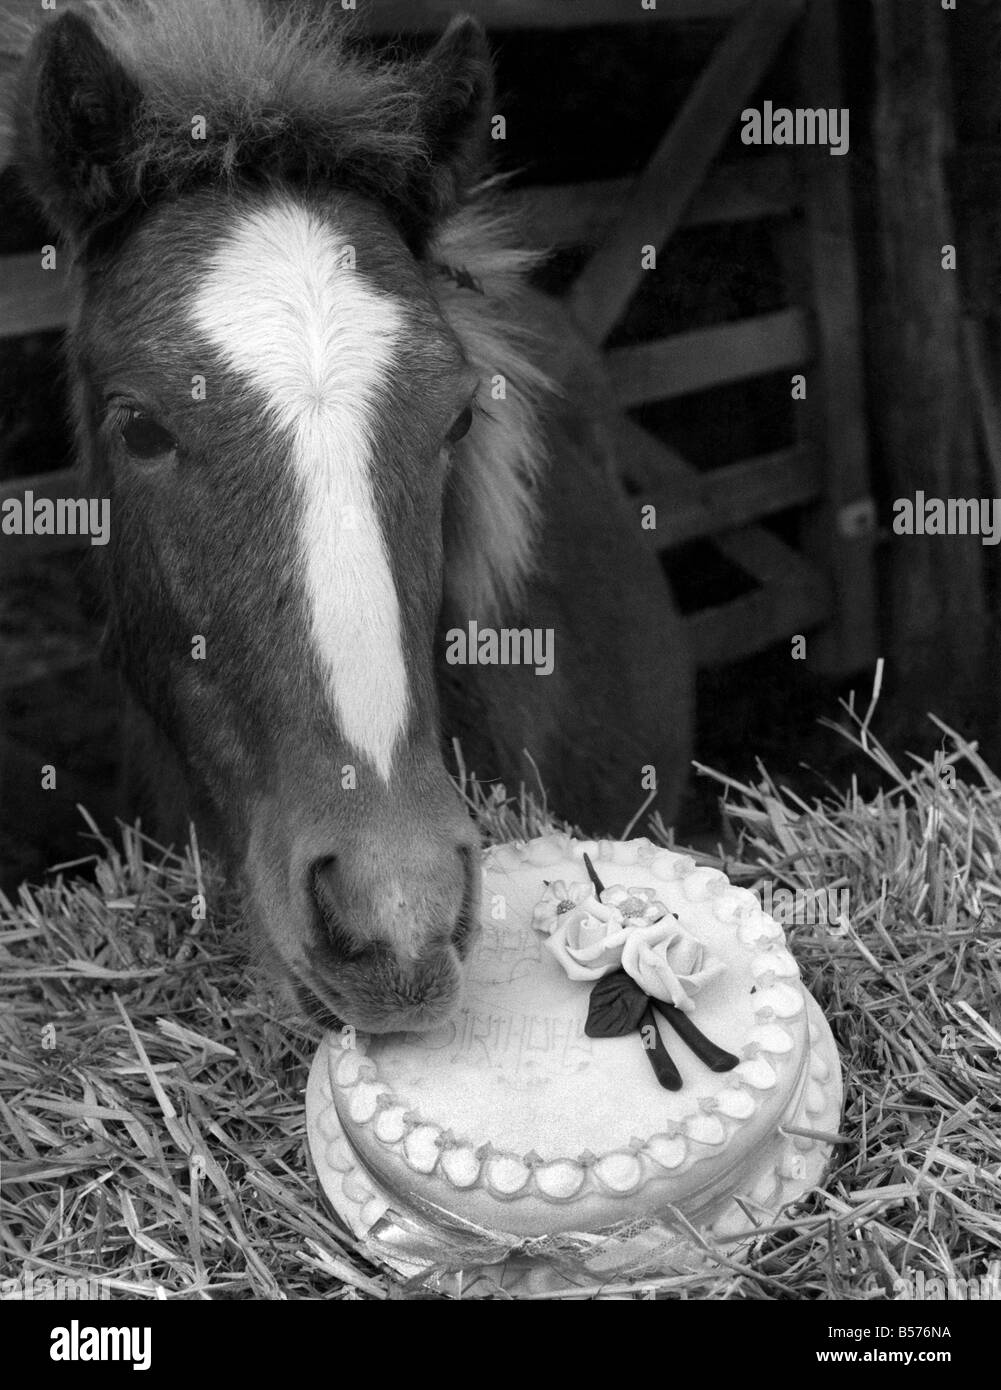 Lucky, tries his first birthday cake. October 1983 P004866 - Stock Image